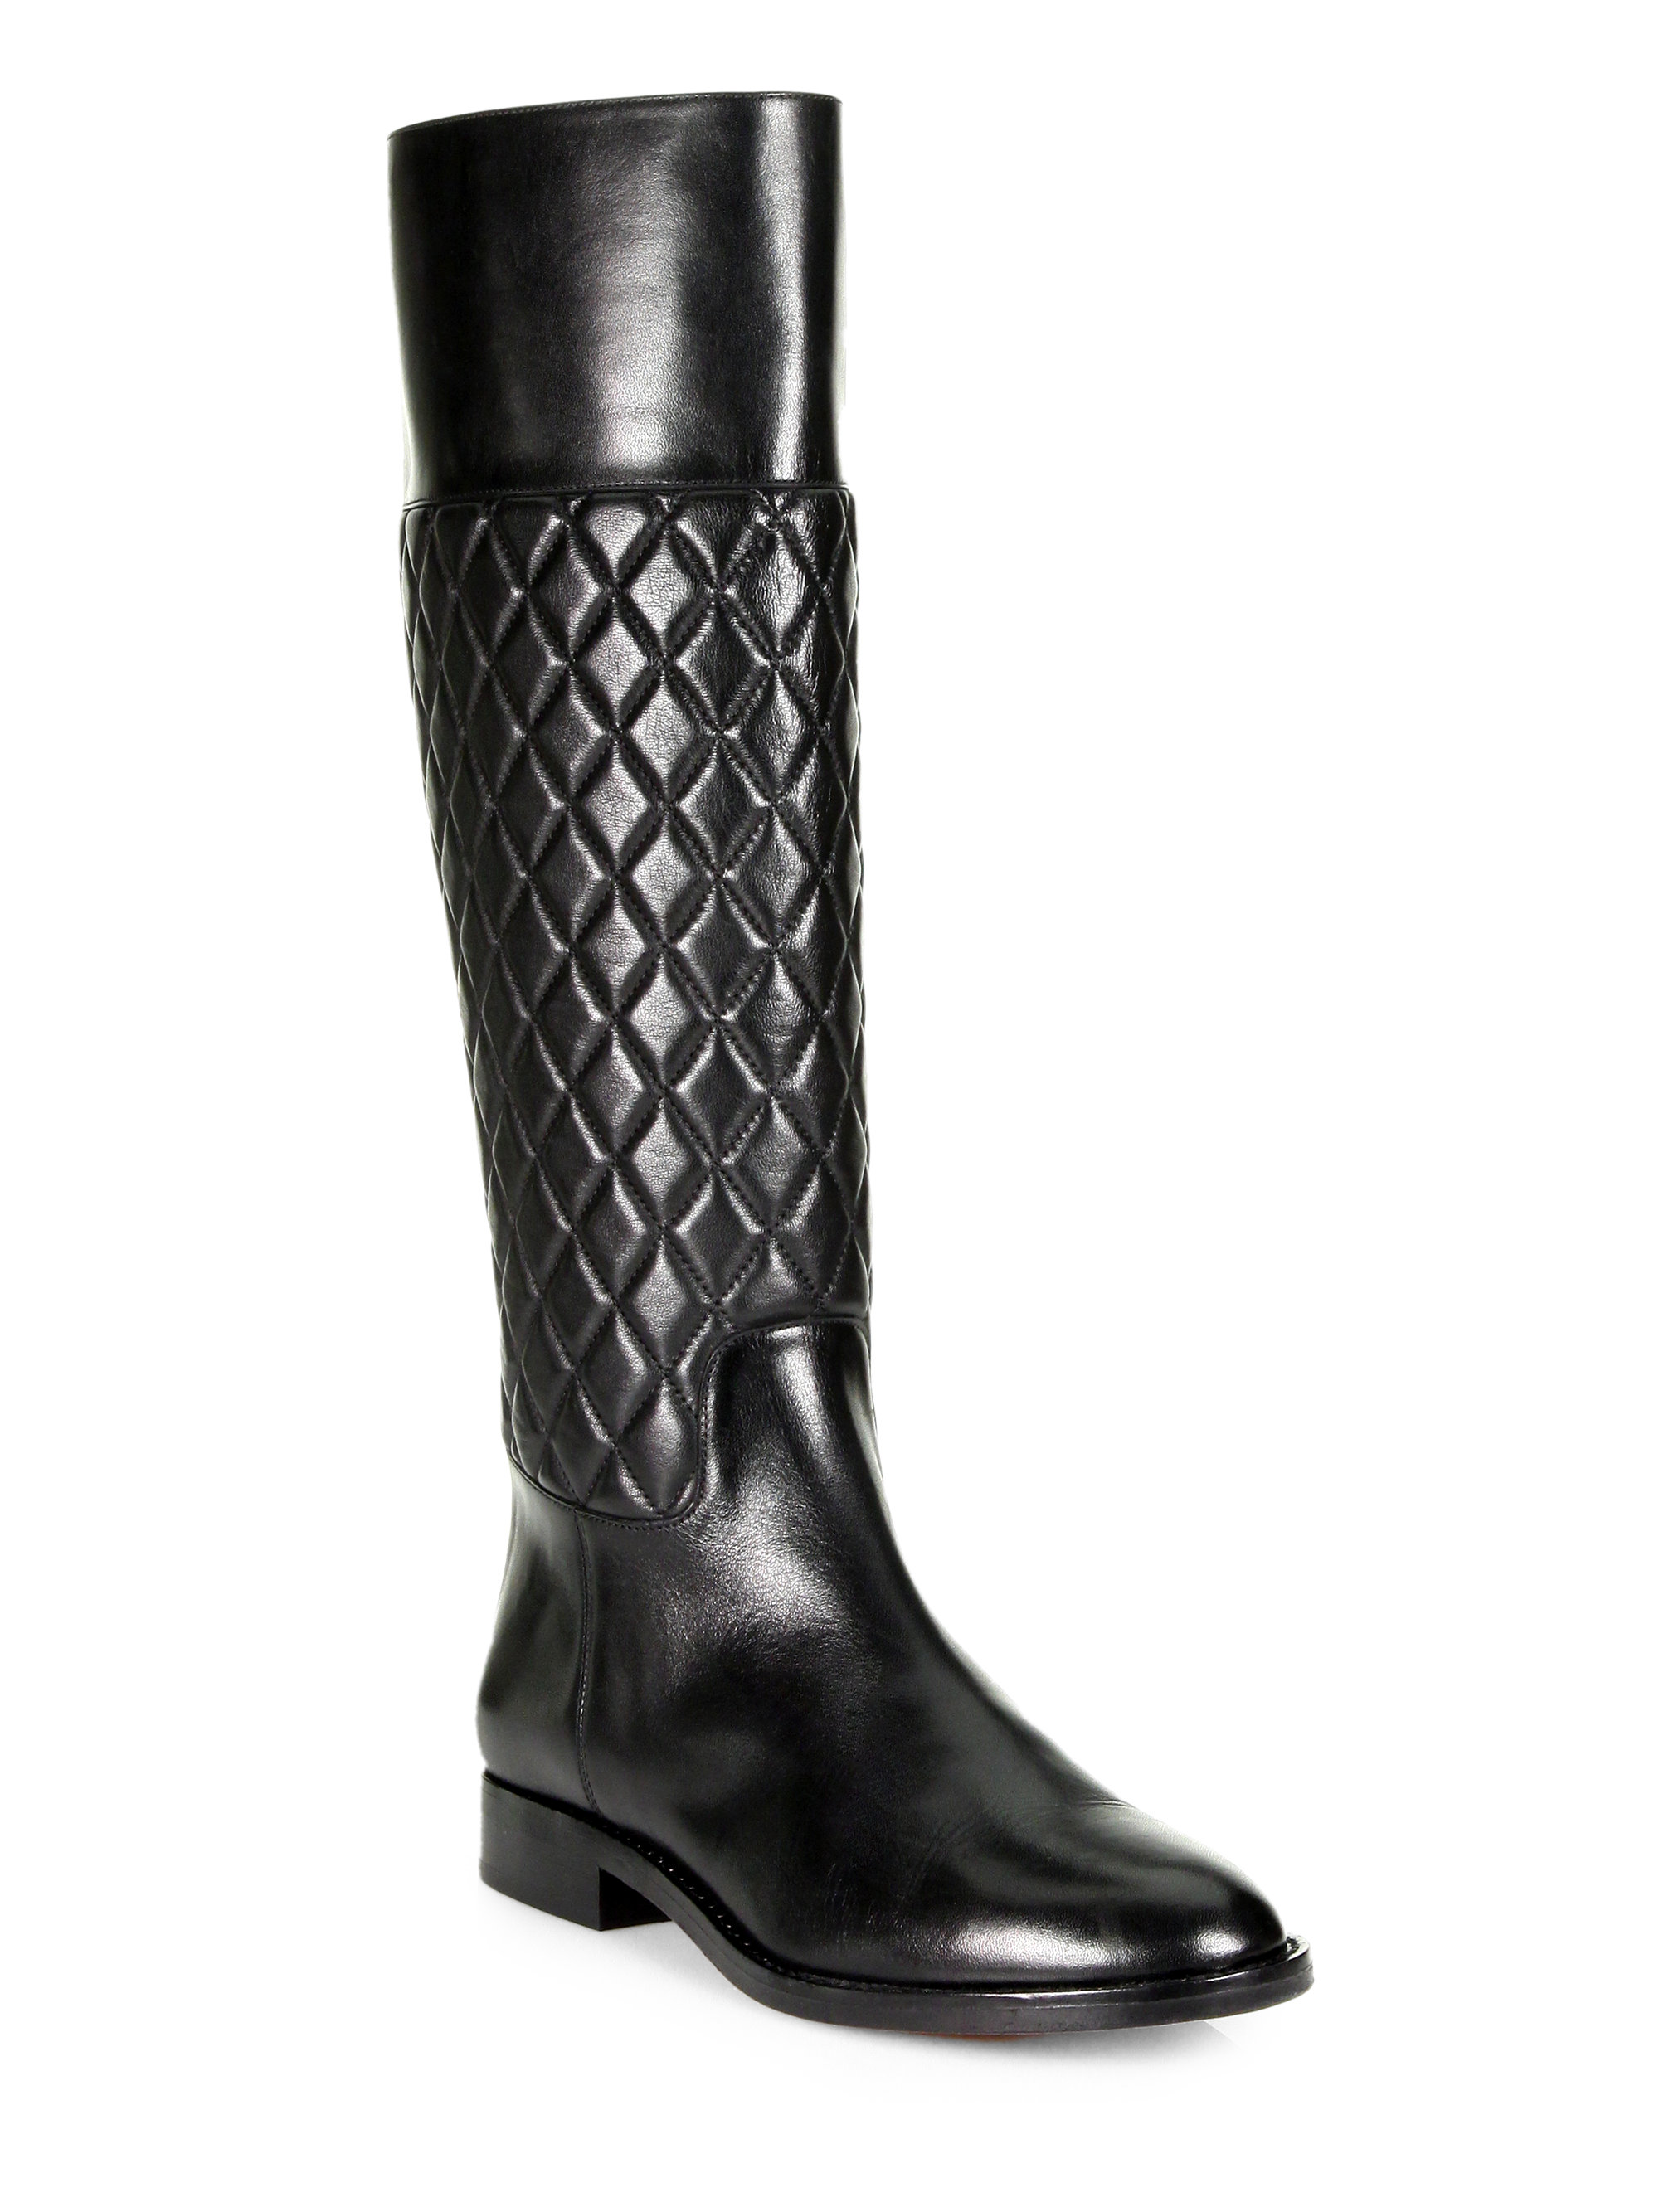 michael kors mina quilted leather boots in black lyst